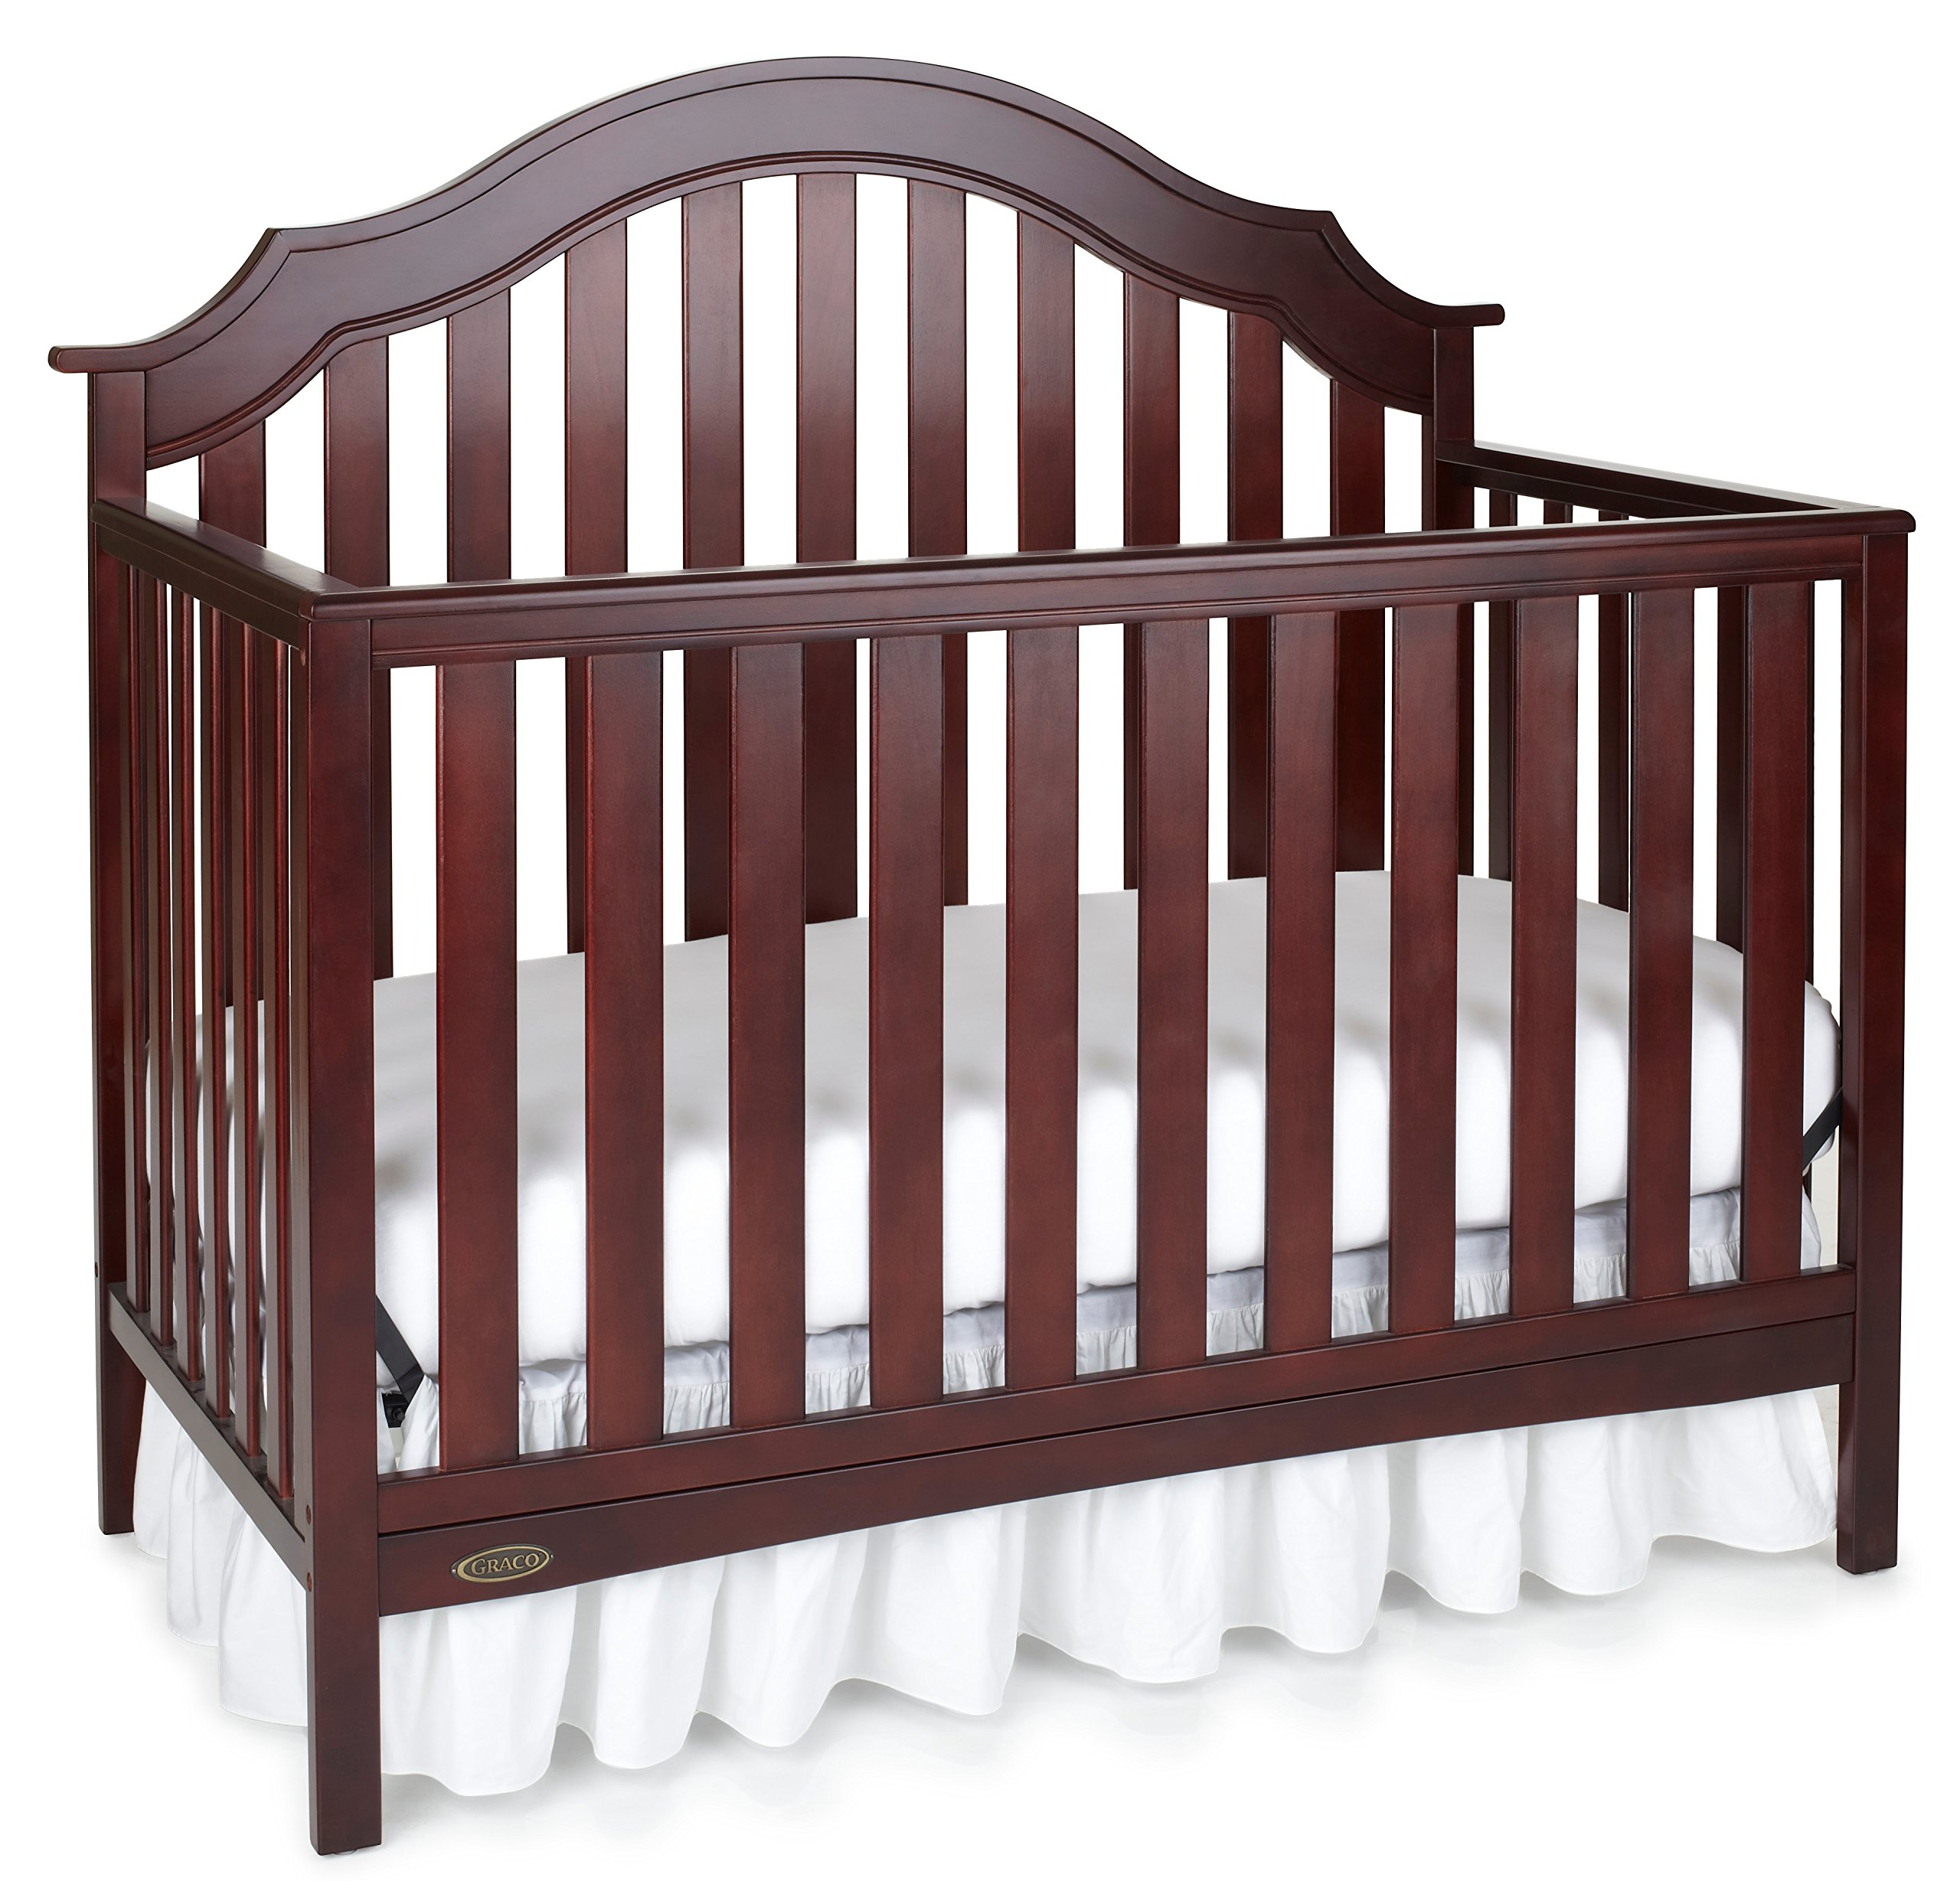 Graco Addison Convertible Crib, Cherry